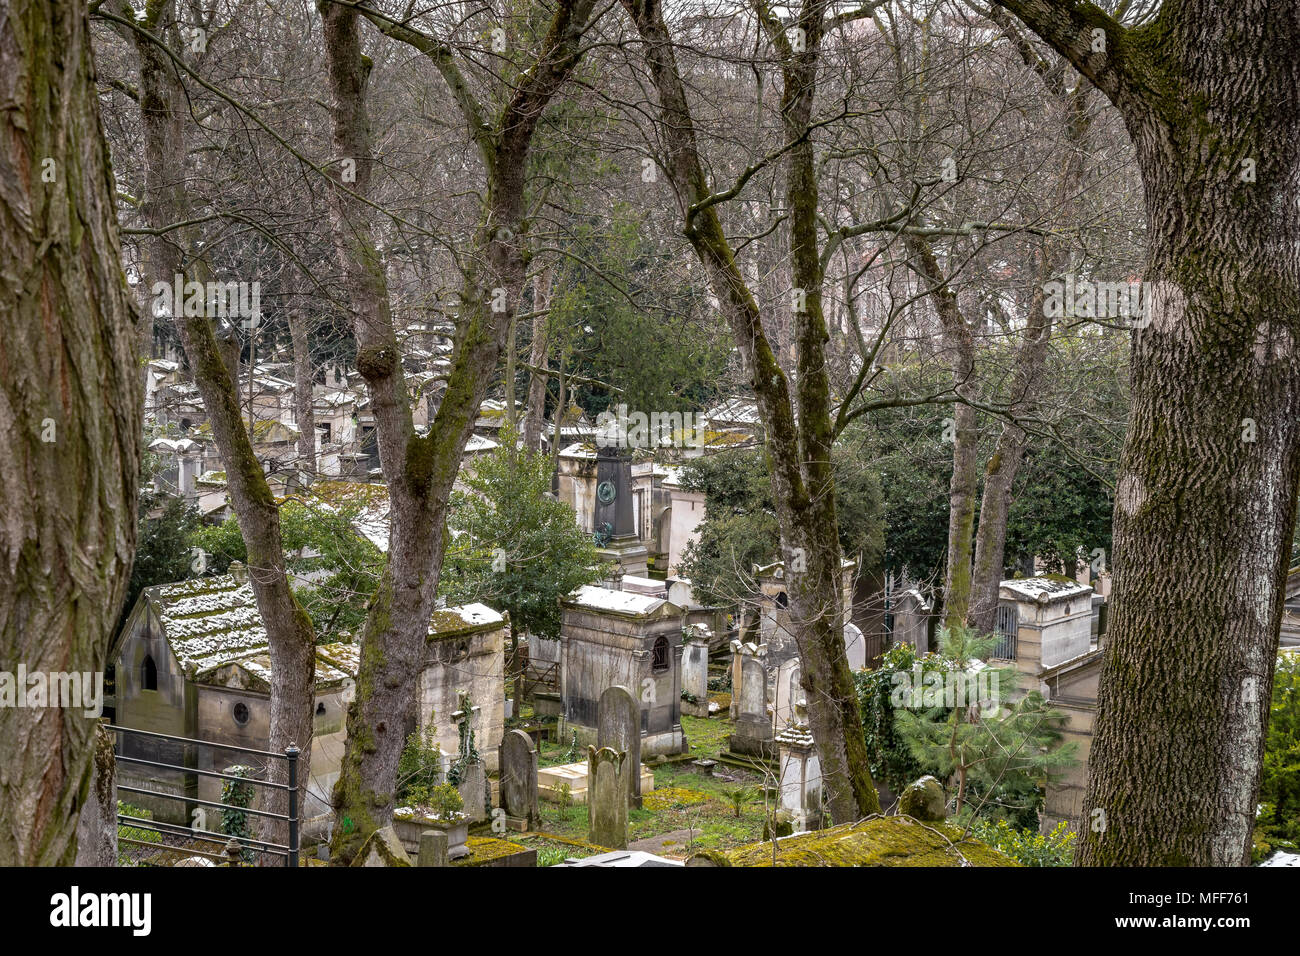 Mausoleum's or family tombs in Père Lachaise cemetery, the largest and most visited cemetery  in ParisStock Photo